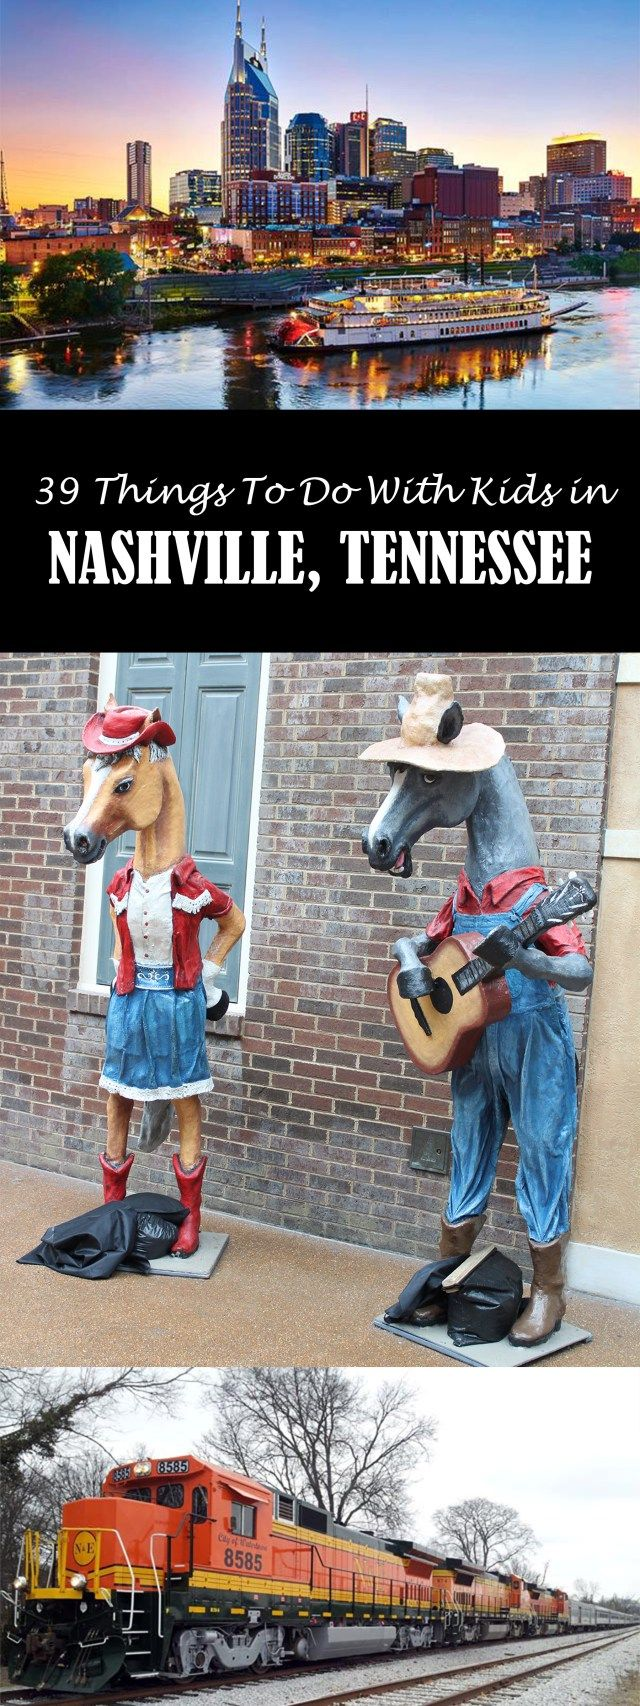 39 fun things to do with kids in nashville tennessee